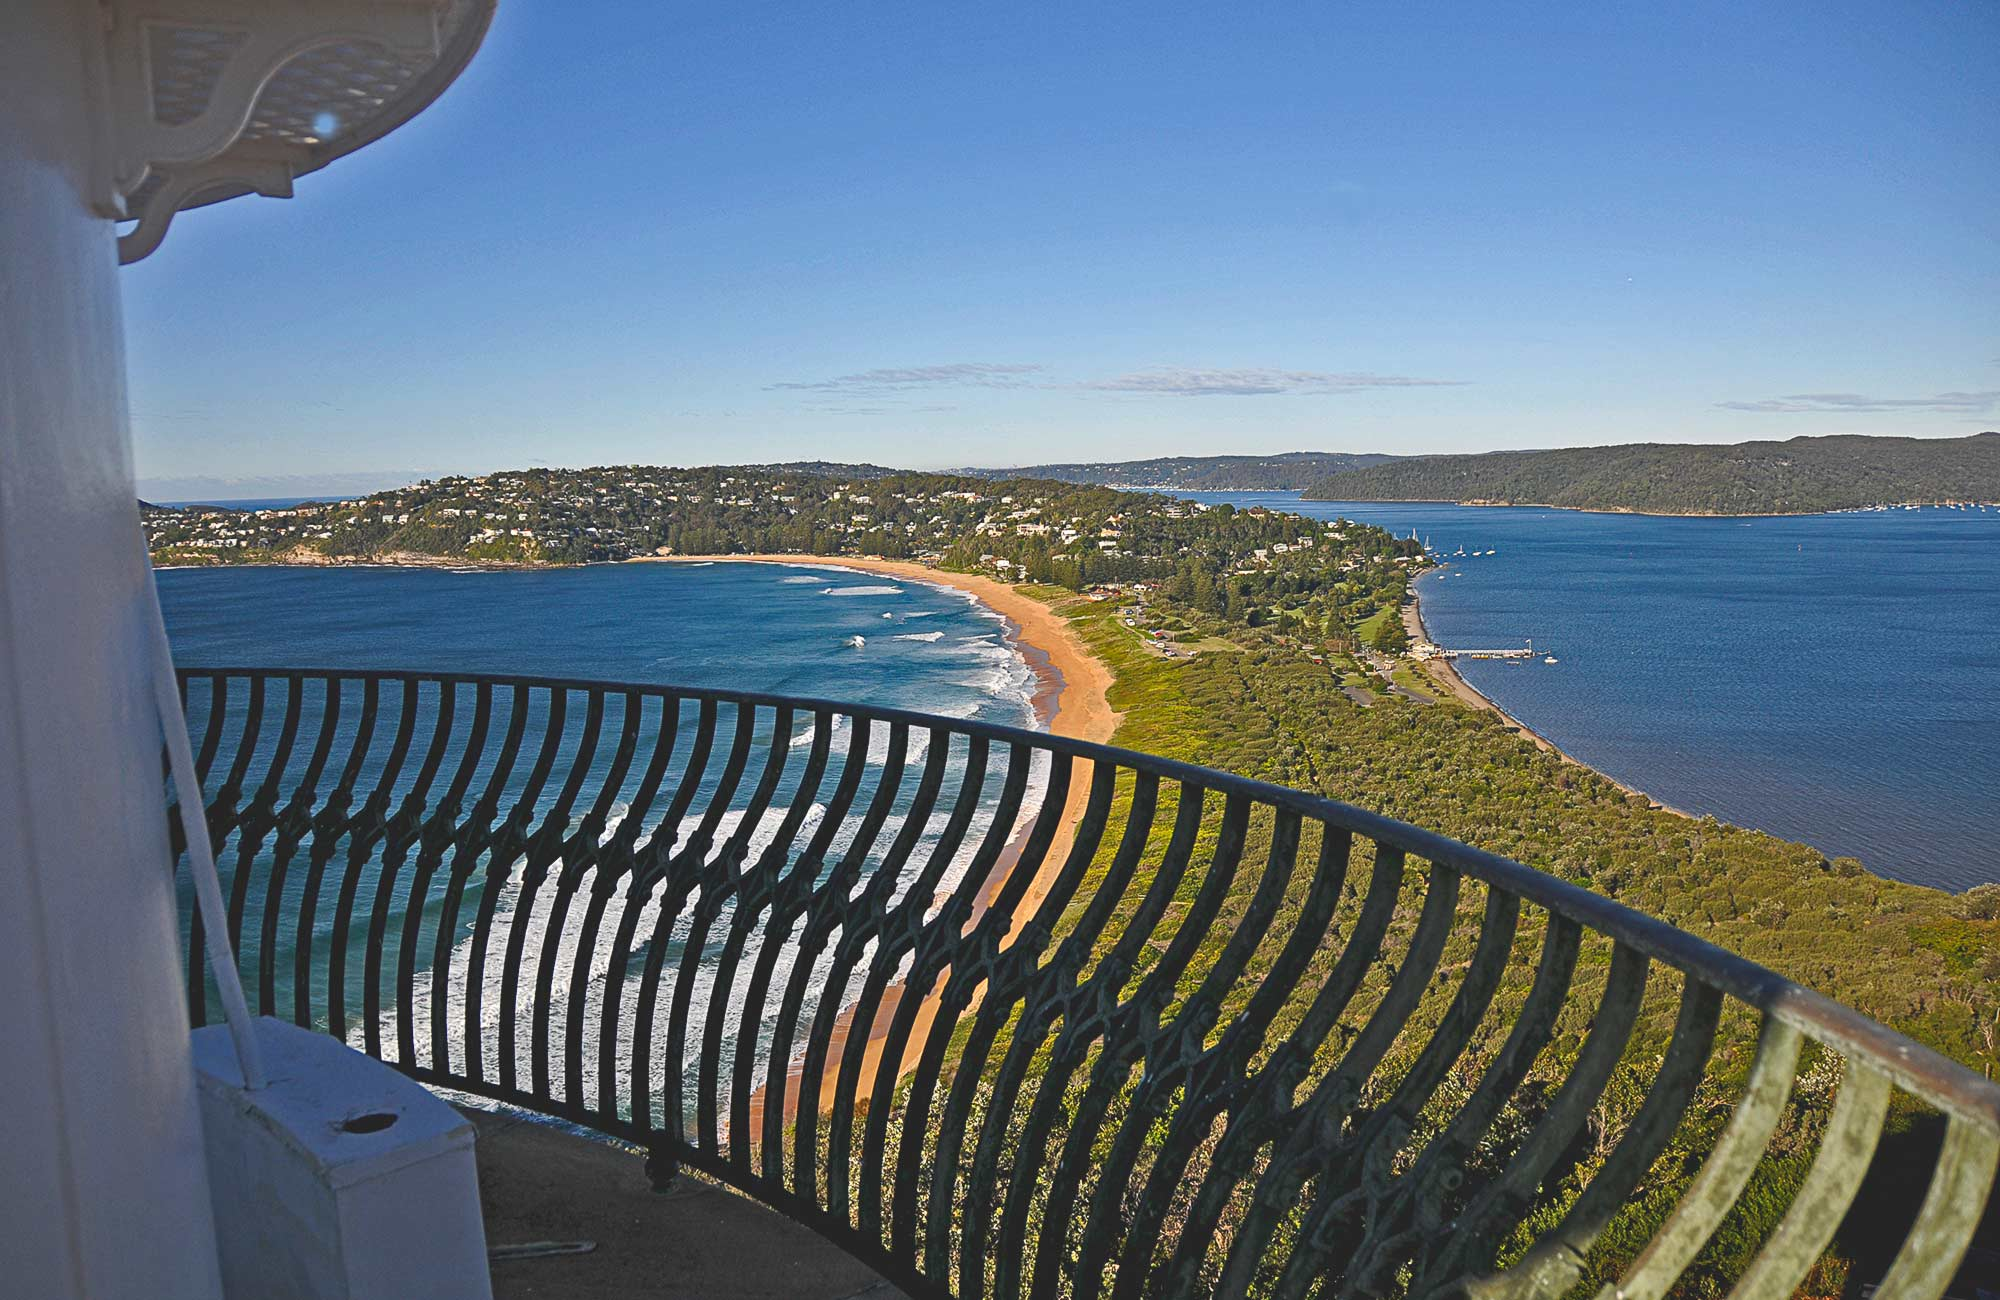 The view from the top of Barrenjoey Lighthouse. Photo:K. McGrath